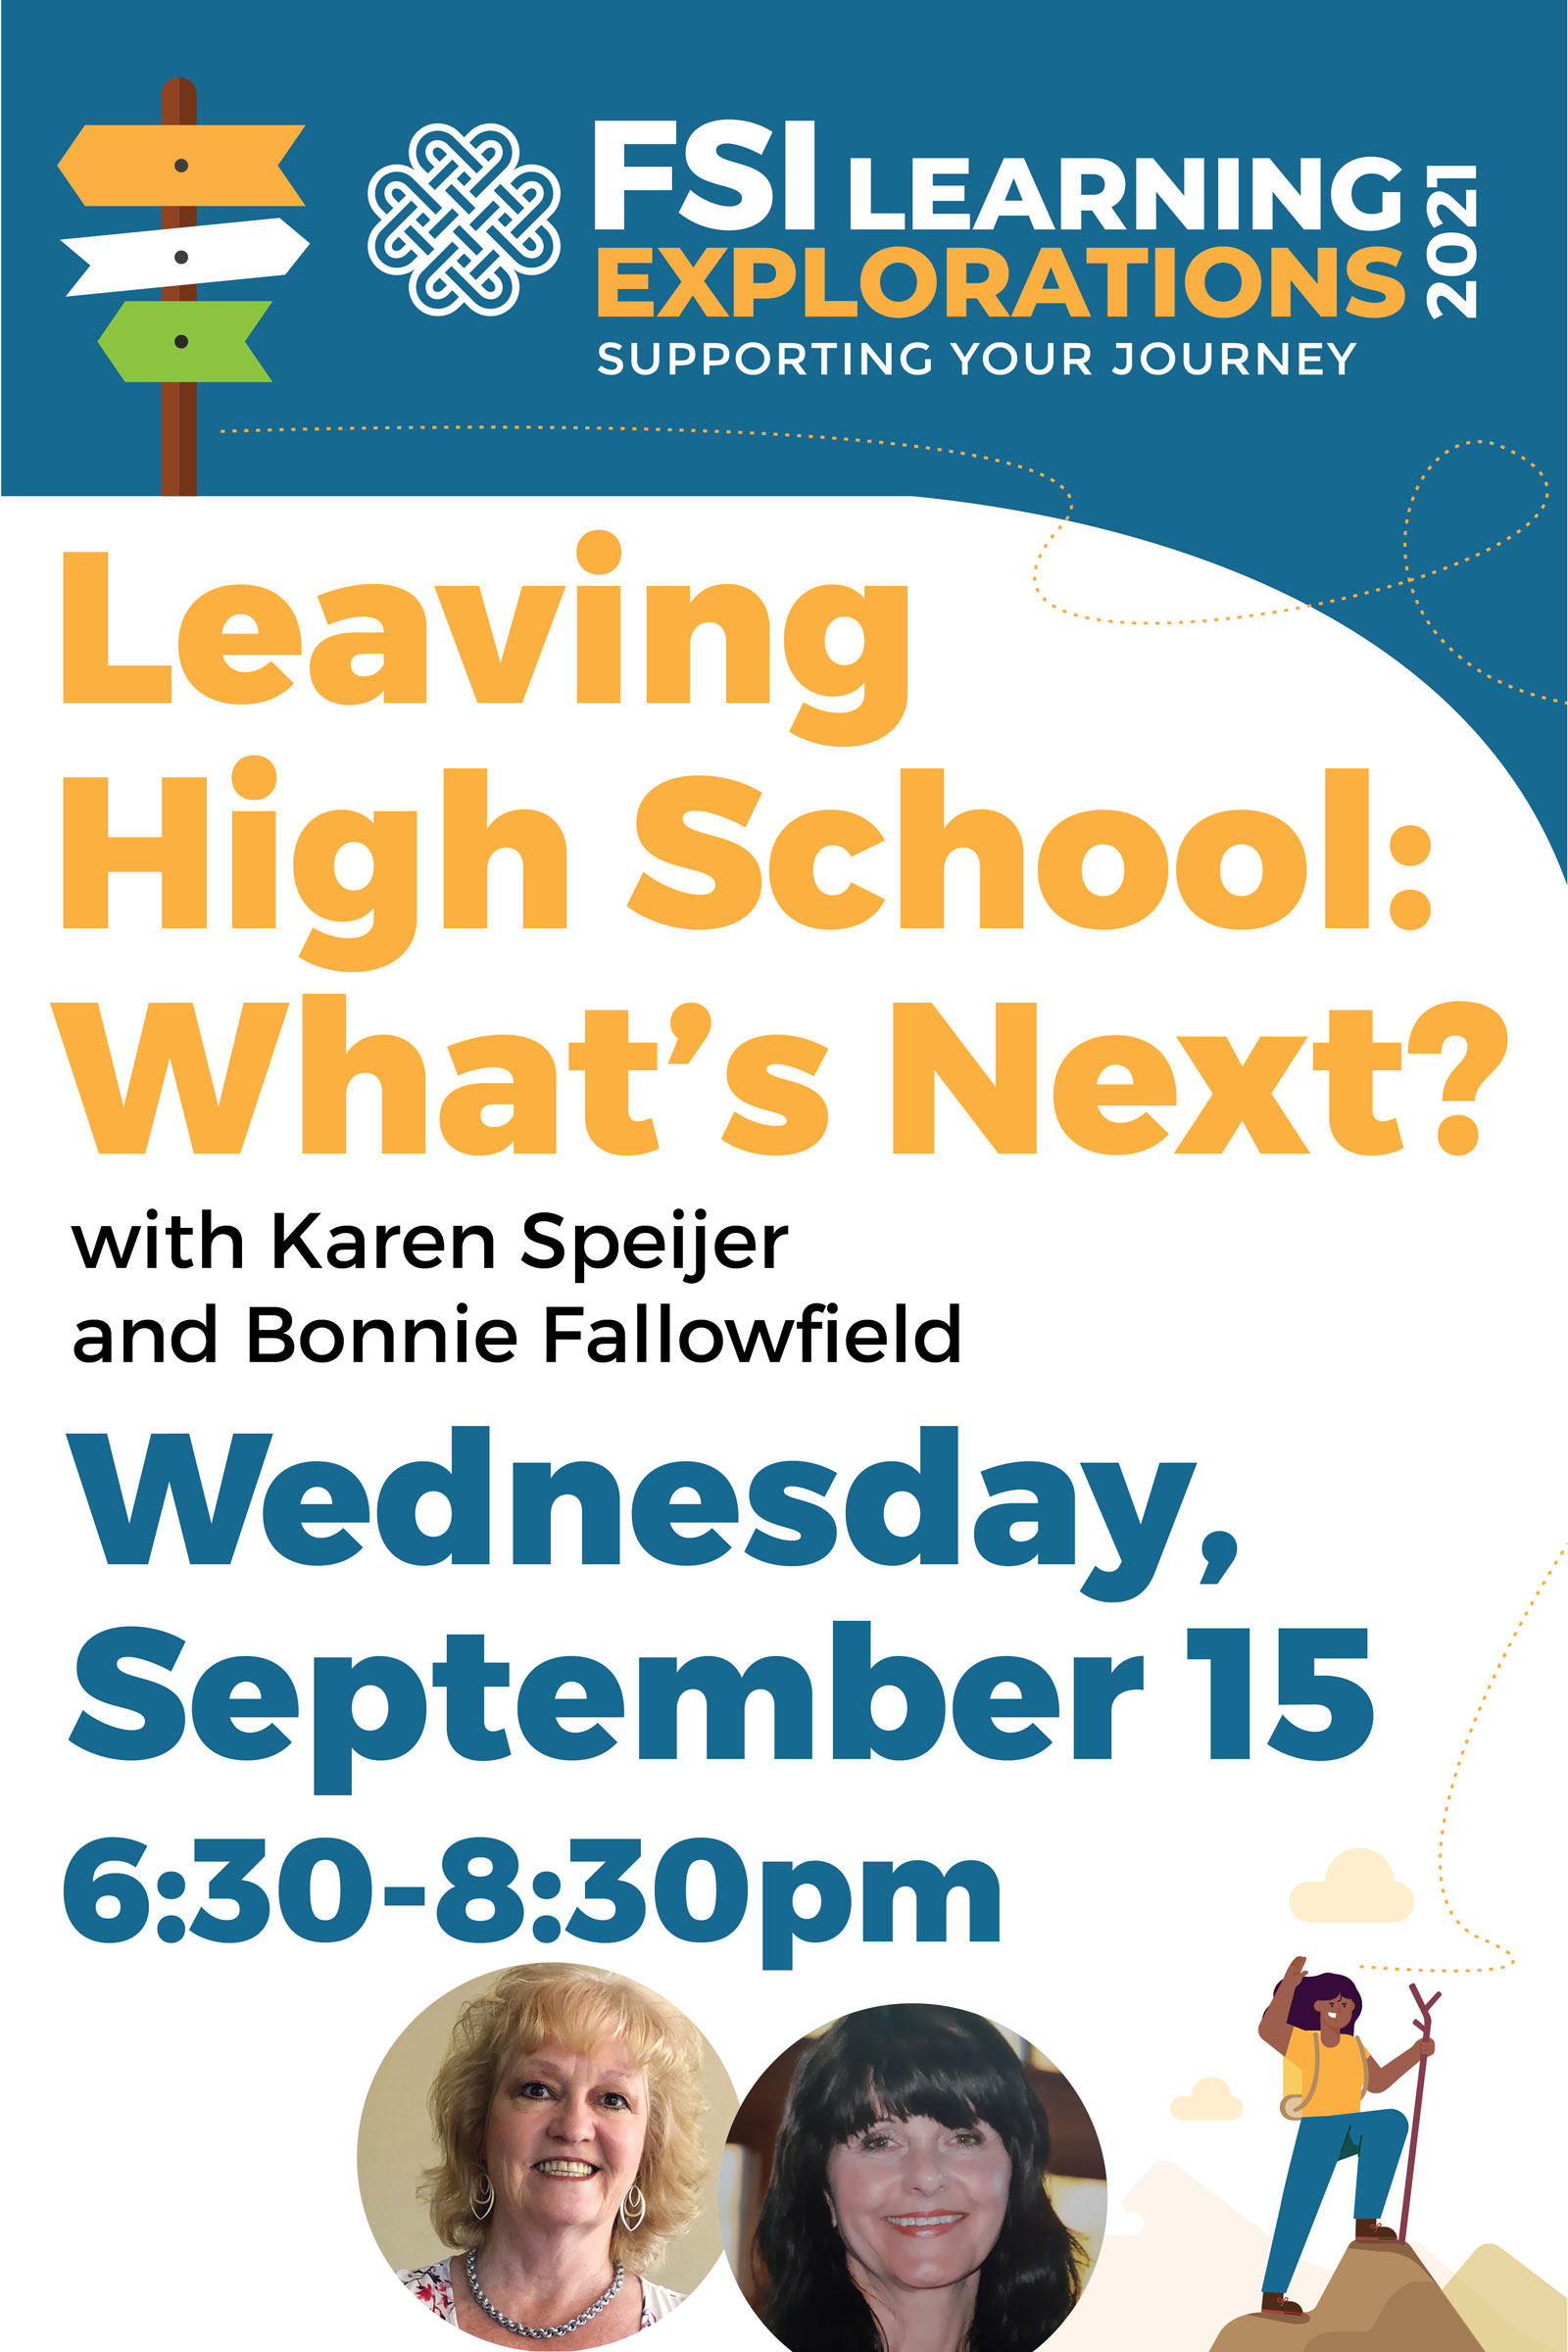 FSI Learning Explorations - Leaving High School: What's Next?